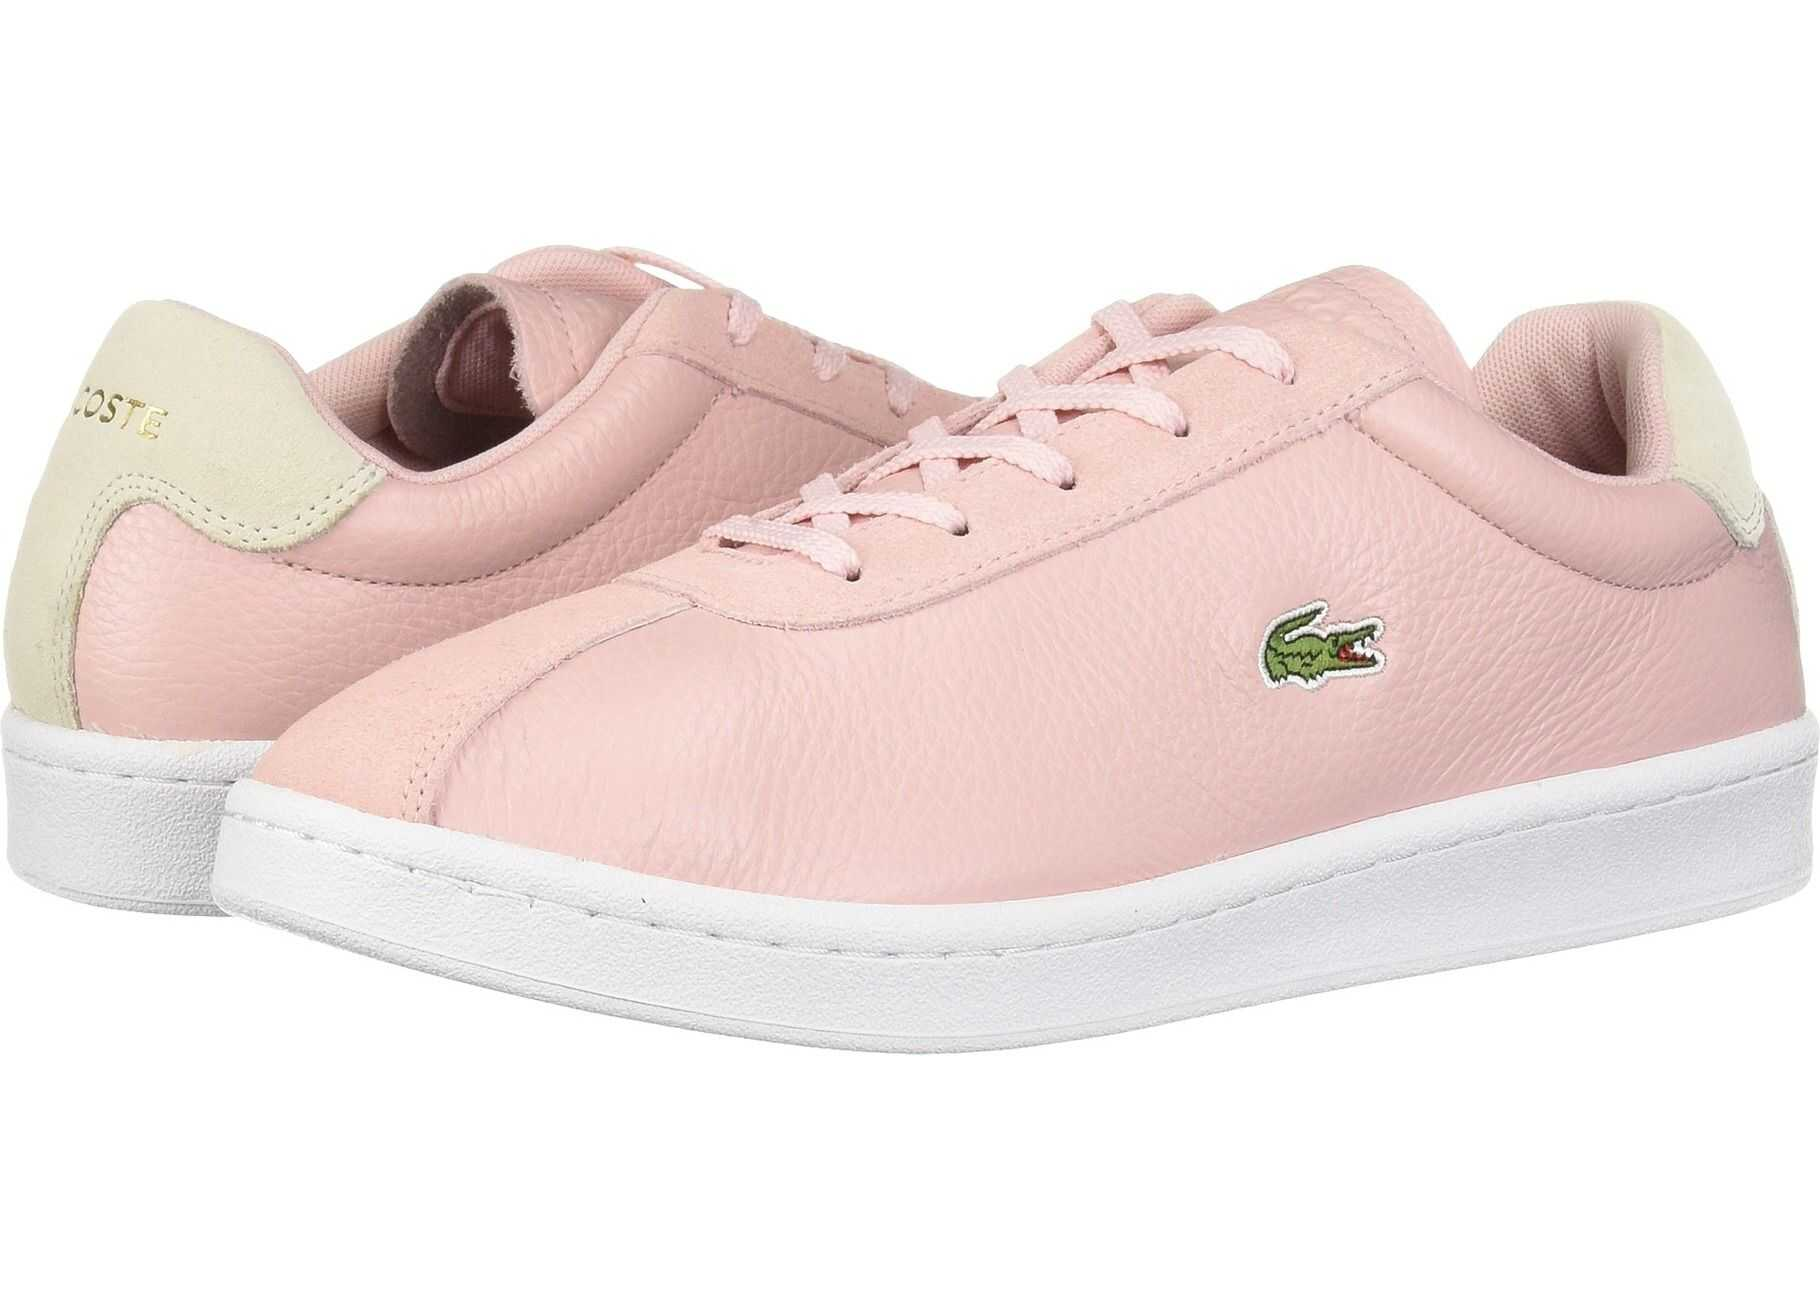 Lacoste Masters 119 2 Light Pink/Off-White